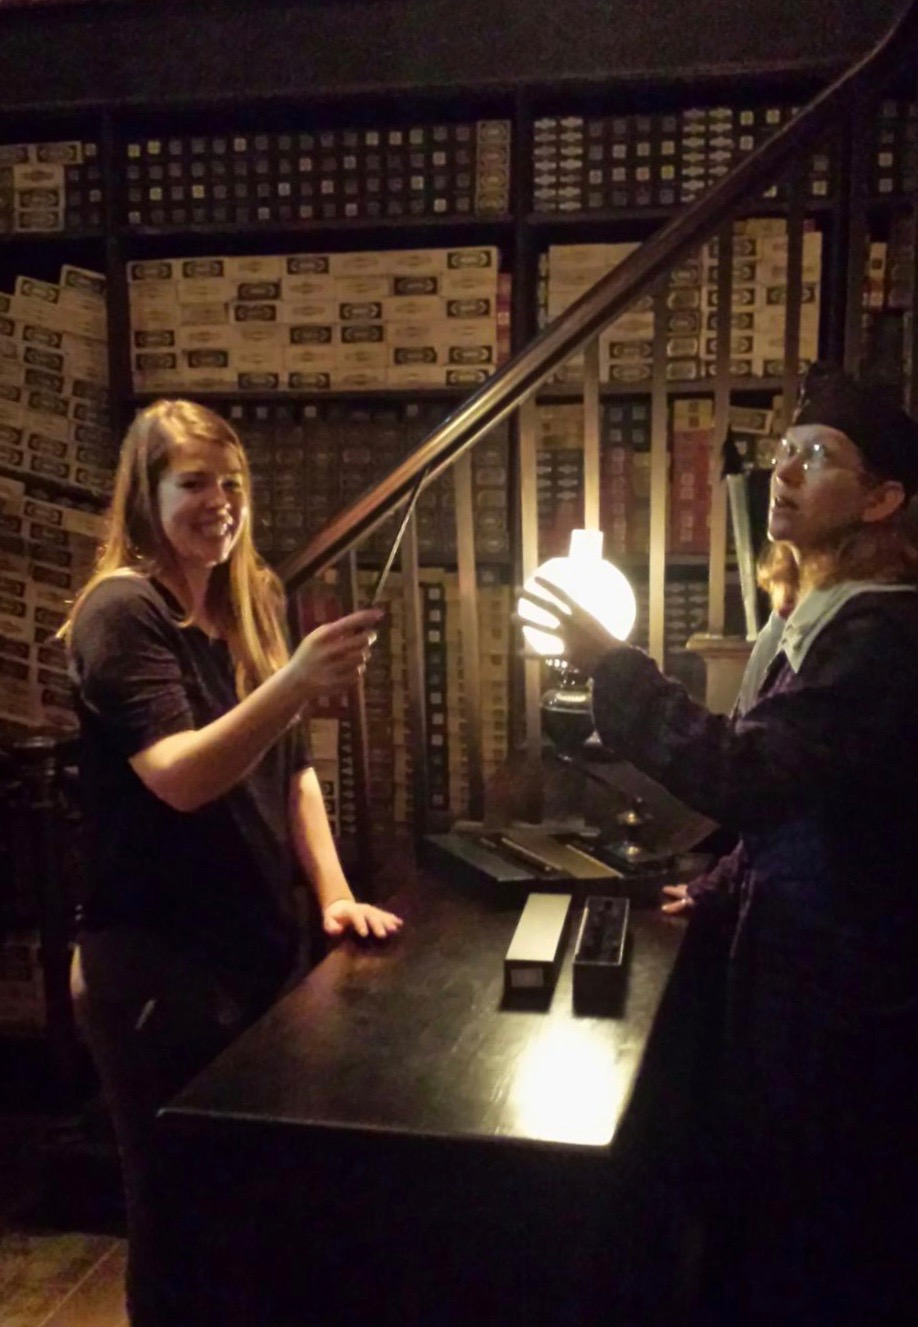 Because dreams come true, I was chosen during the wand presentation at Harry Potter World. As you can see from the expression on my face, life cannot possibly go up from here.